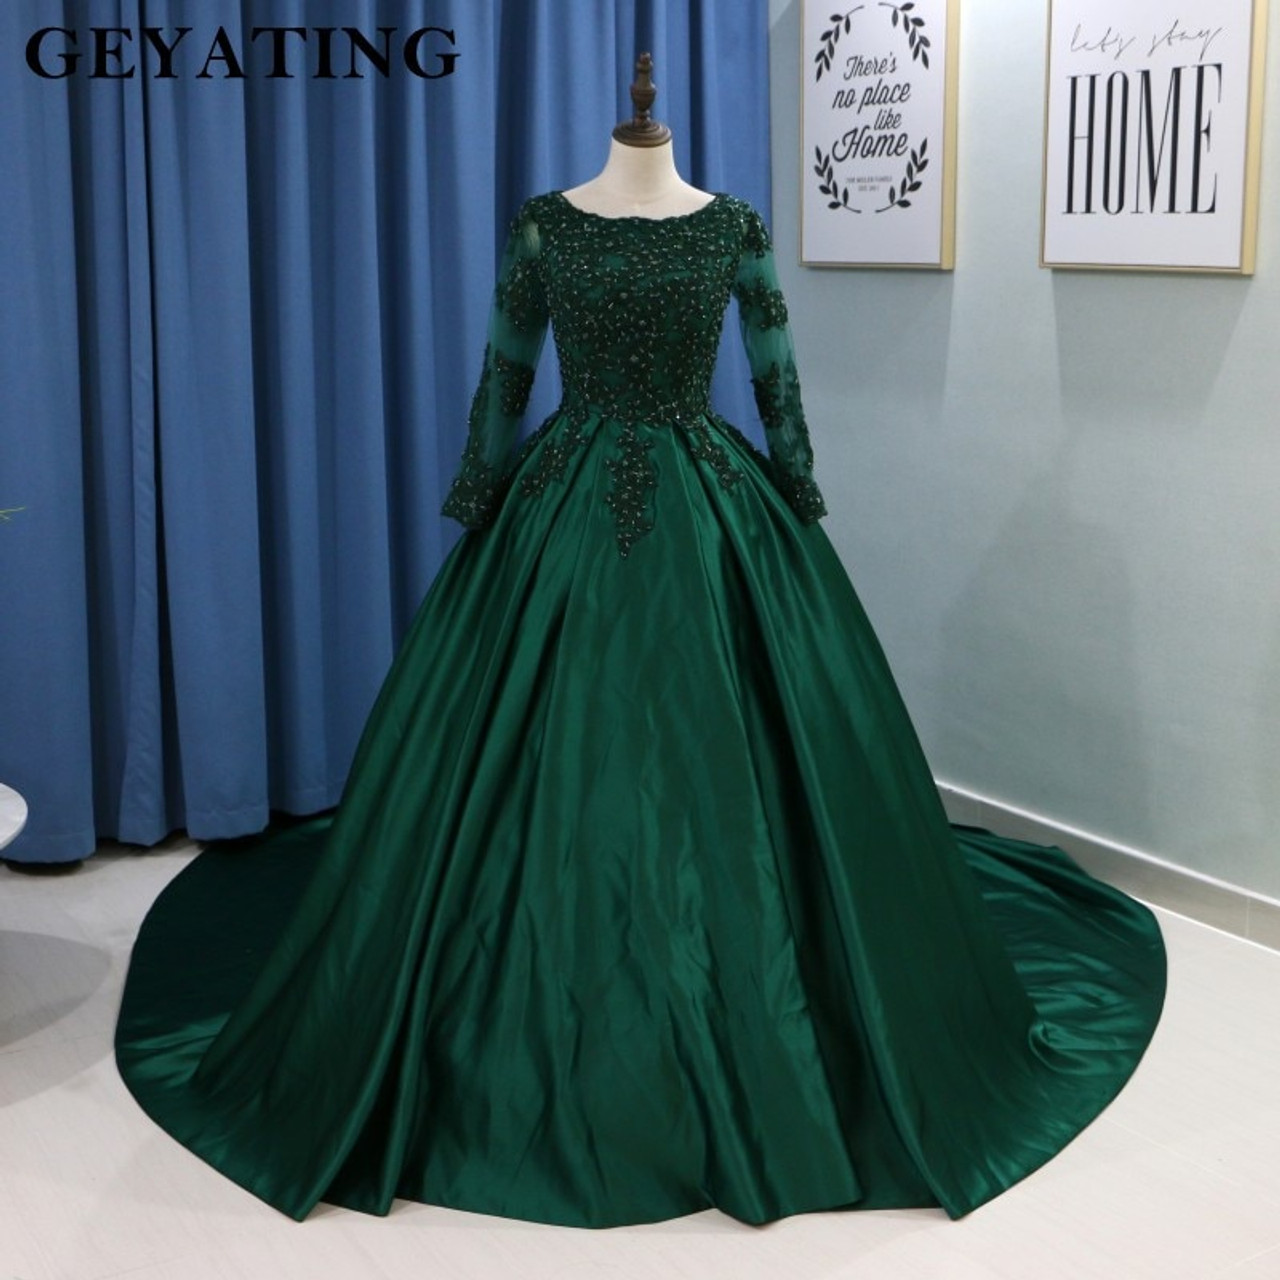 2d22e09cad932 Emerald Green Lace Long Sleeves Muslim Wedding Dress 2018 Ball Gown  Princess Bride Dresses Islamic Satin ...